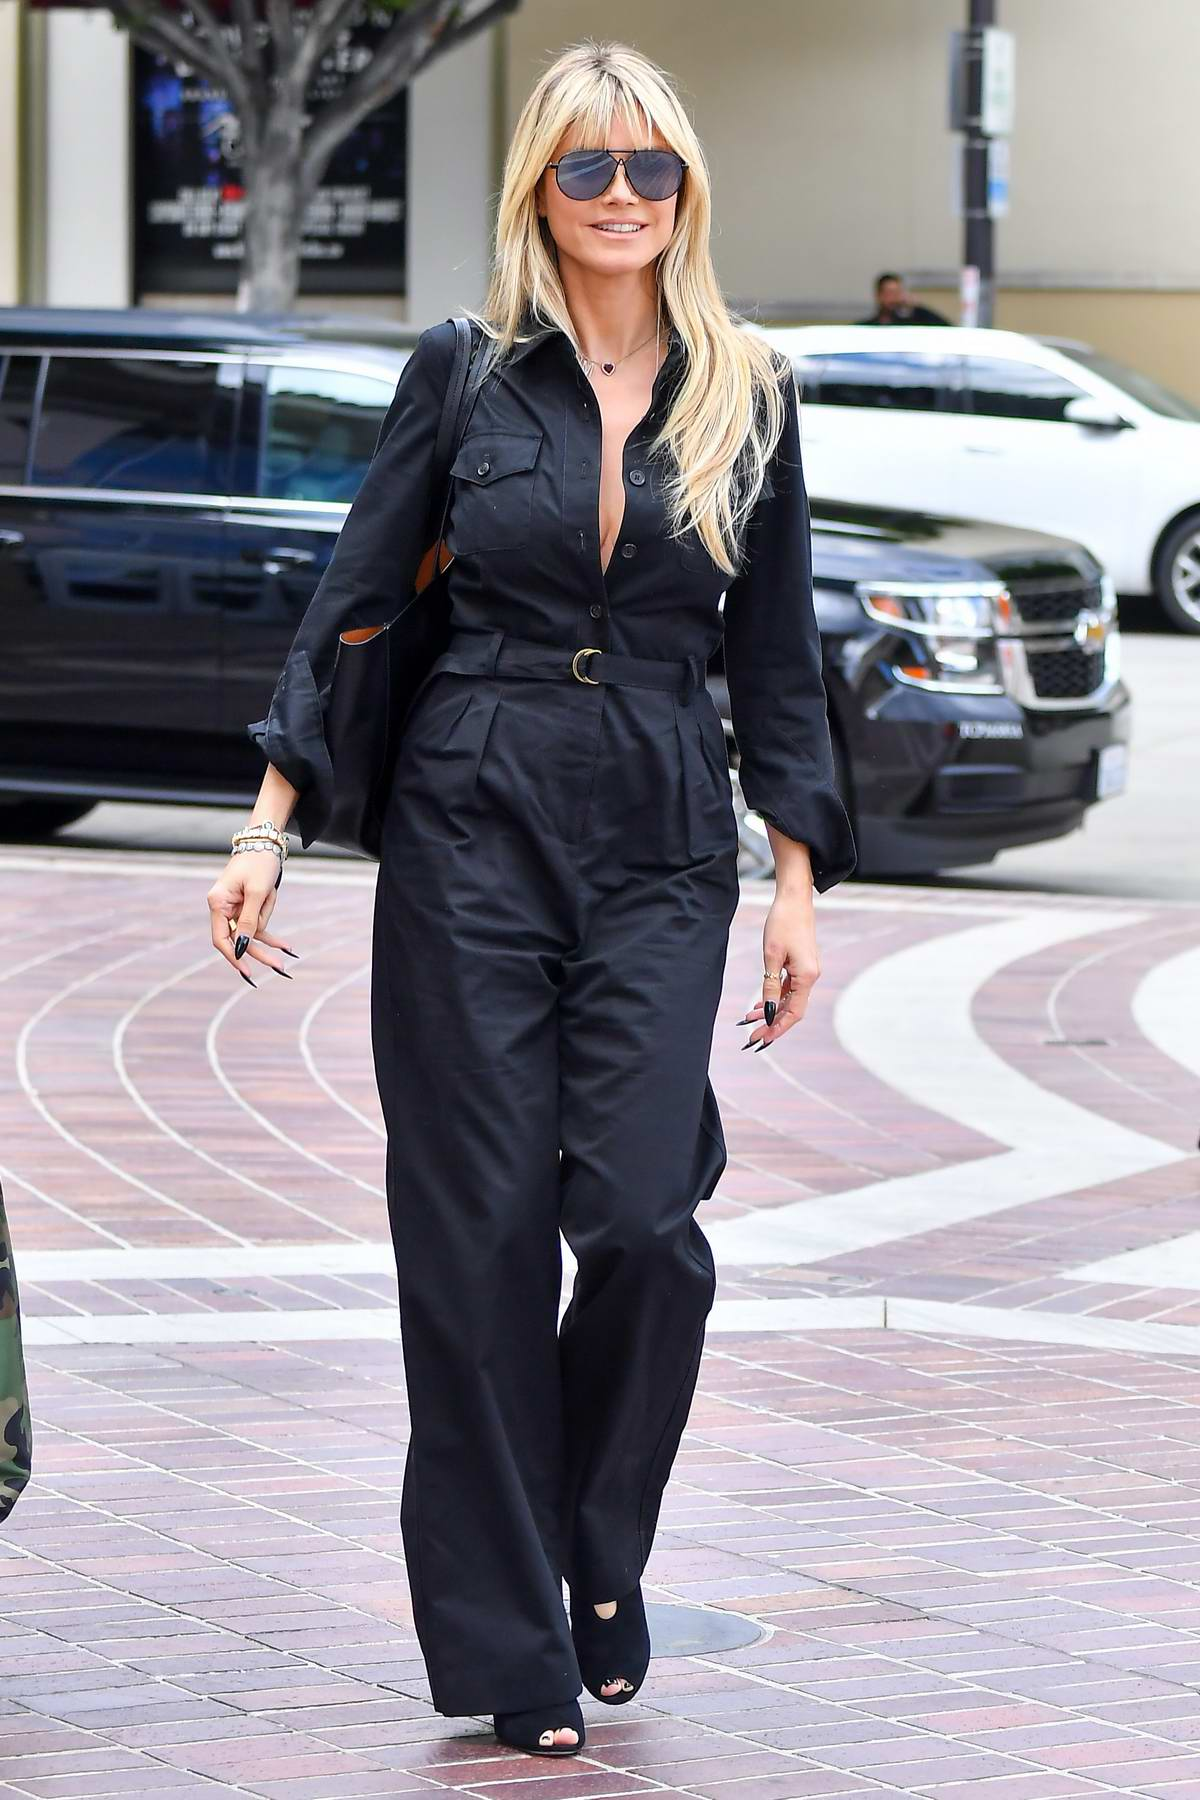 Heidi Klum looks stylish in black jumpsuit as she steps out in Pasadena, California